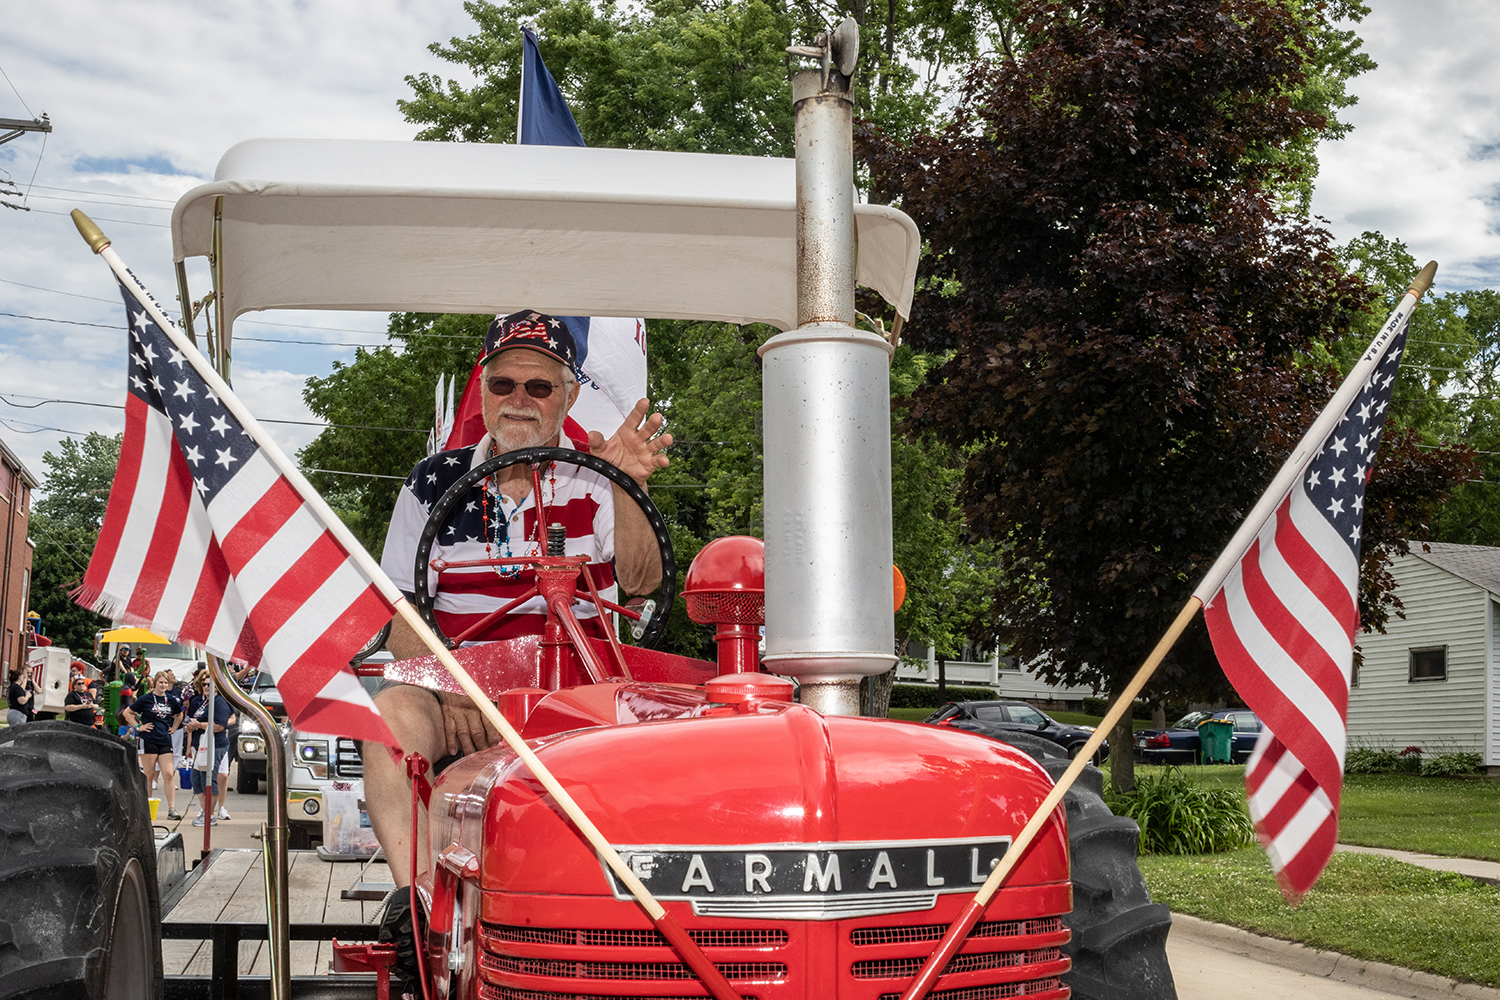 Dick+Svoboda+waves+from+the+seat+of+his+Farmall+tractor+before+pulling+a+float+for+the+Buchanan+County+Republicans+for+the+annual+4th+of+July+parade+in+Independence%2C+Iowa.+This+is+the+159th+4th+of+July+parade+in+Independence.+